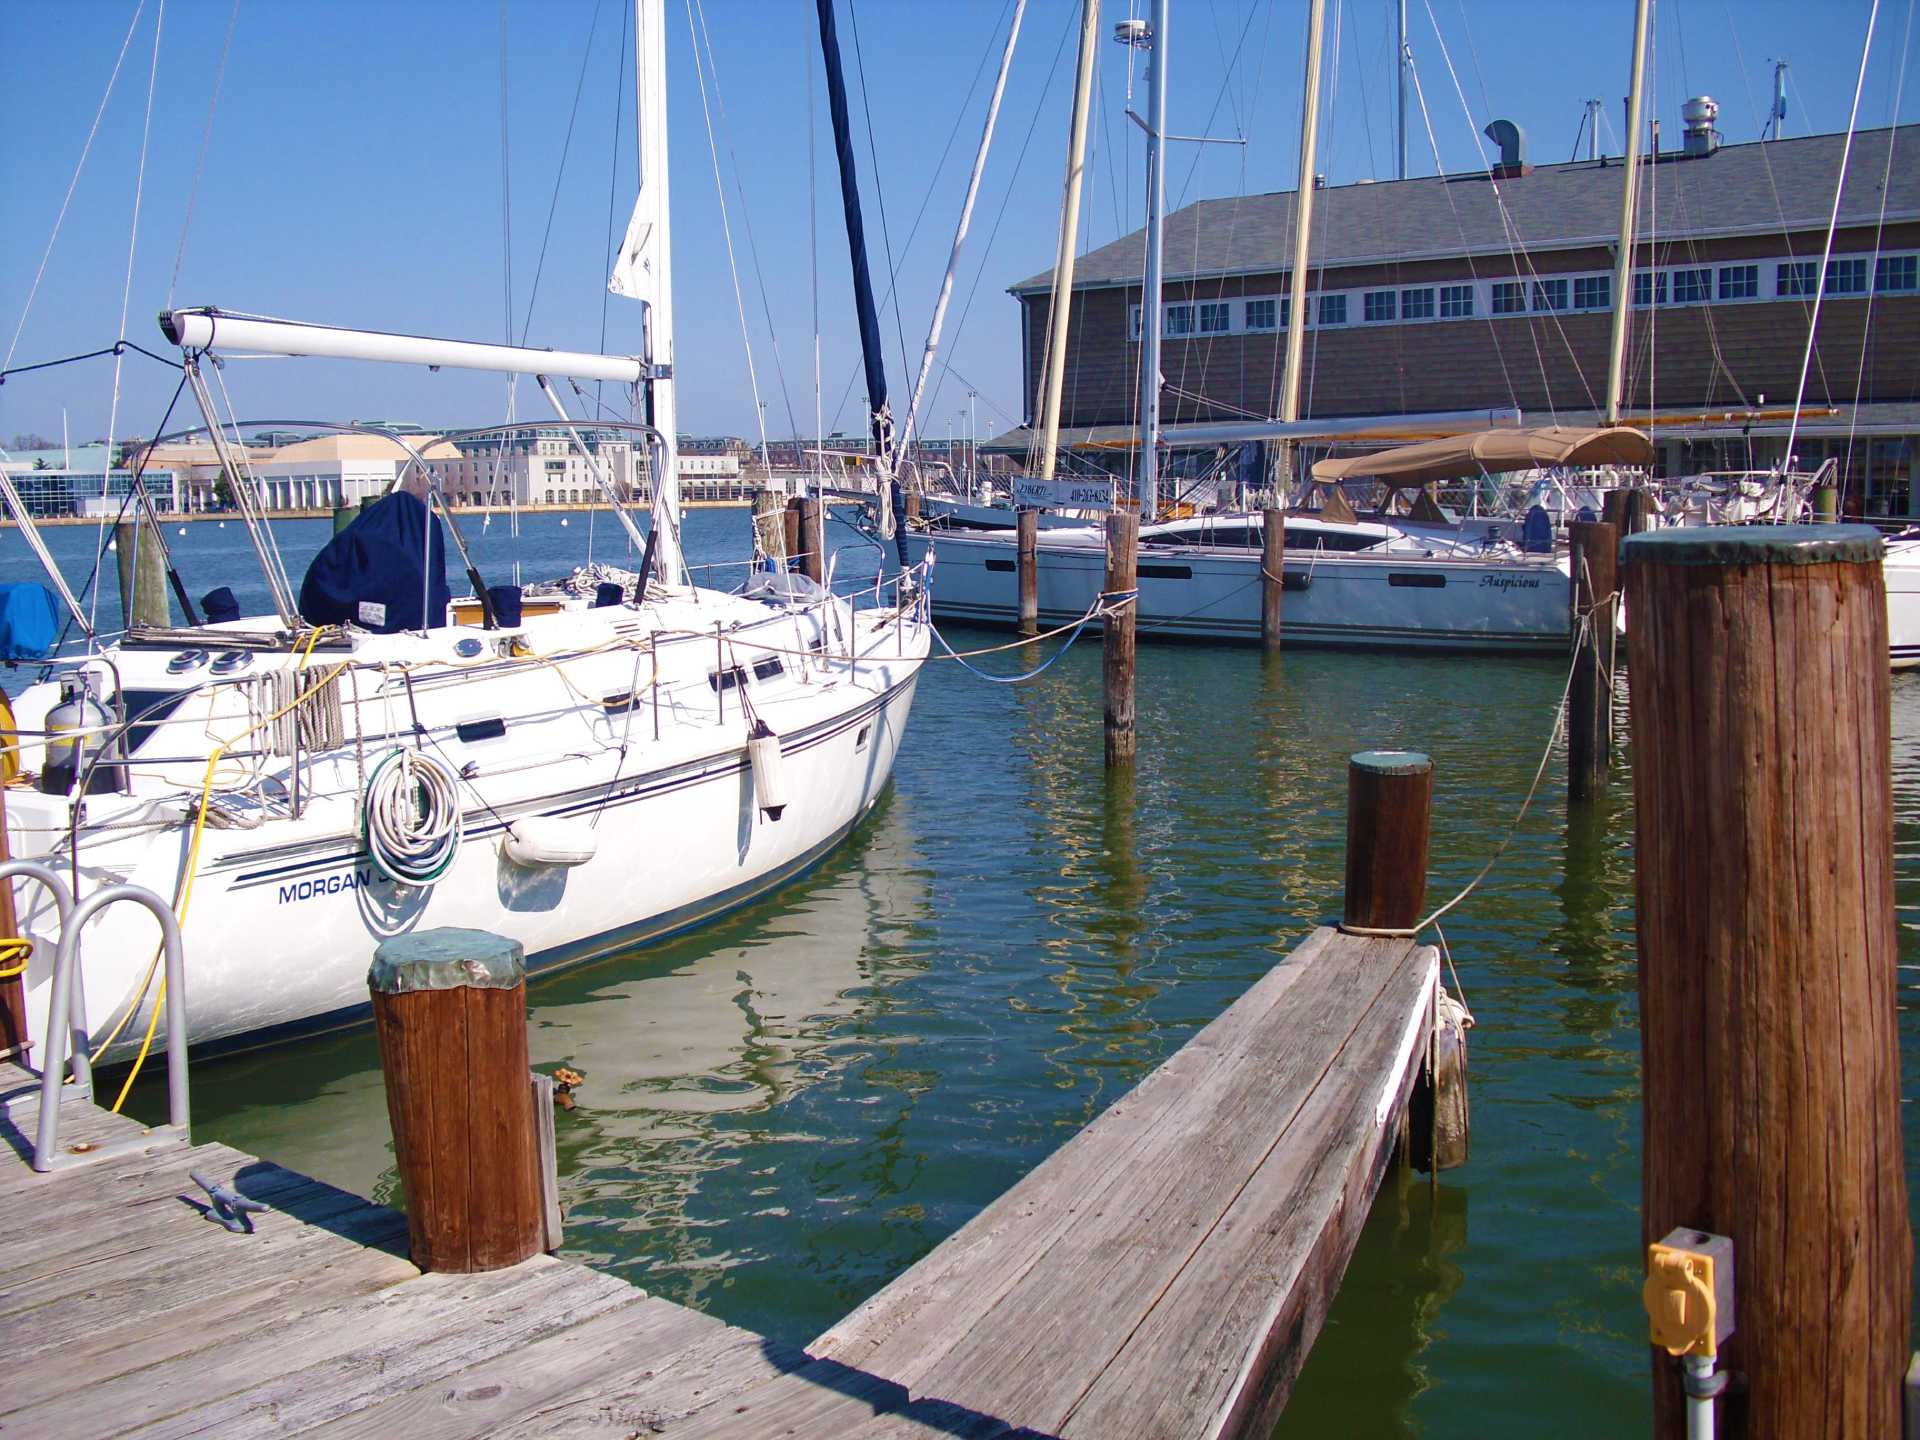 Boat slip on pier 3 at 222 Severn marina looking towards the Chart House Restaurant, U.S. Naval Academy and Annapolis on the Chesapeake Bay.